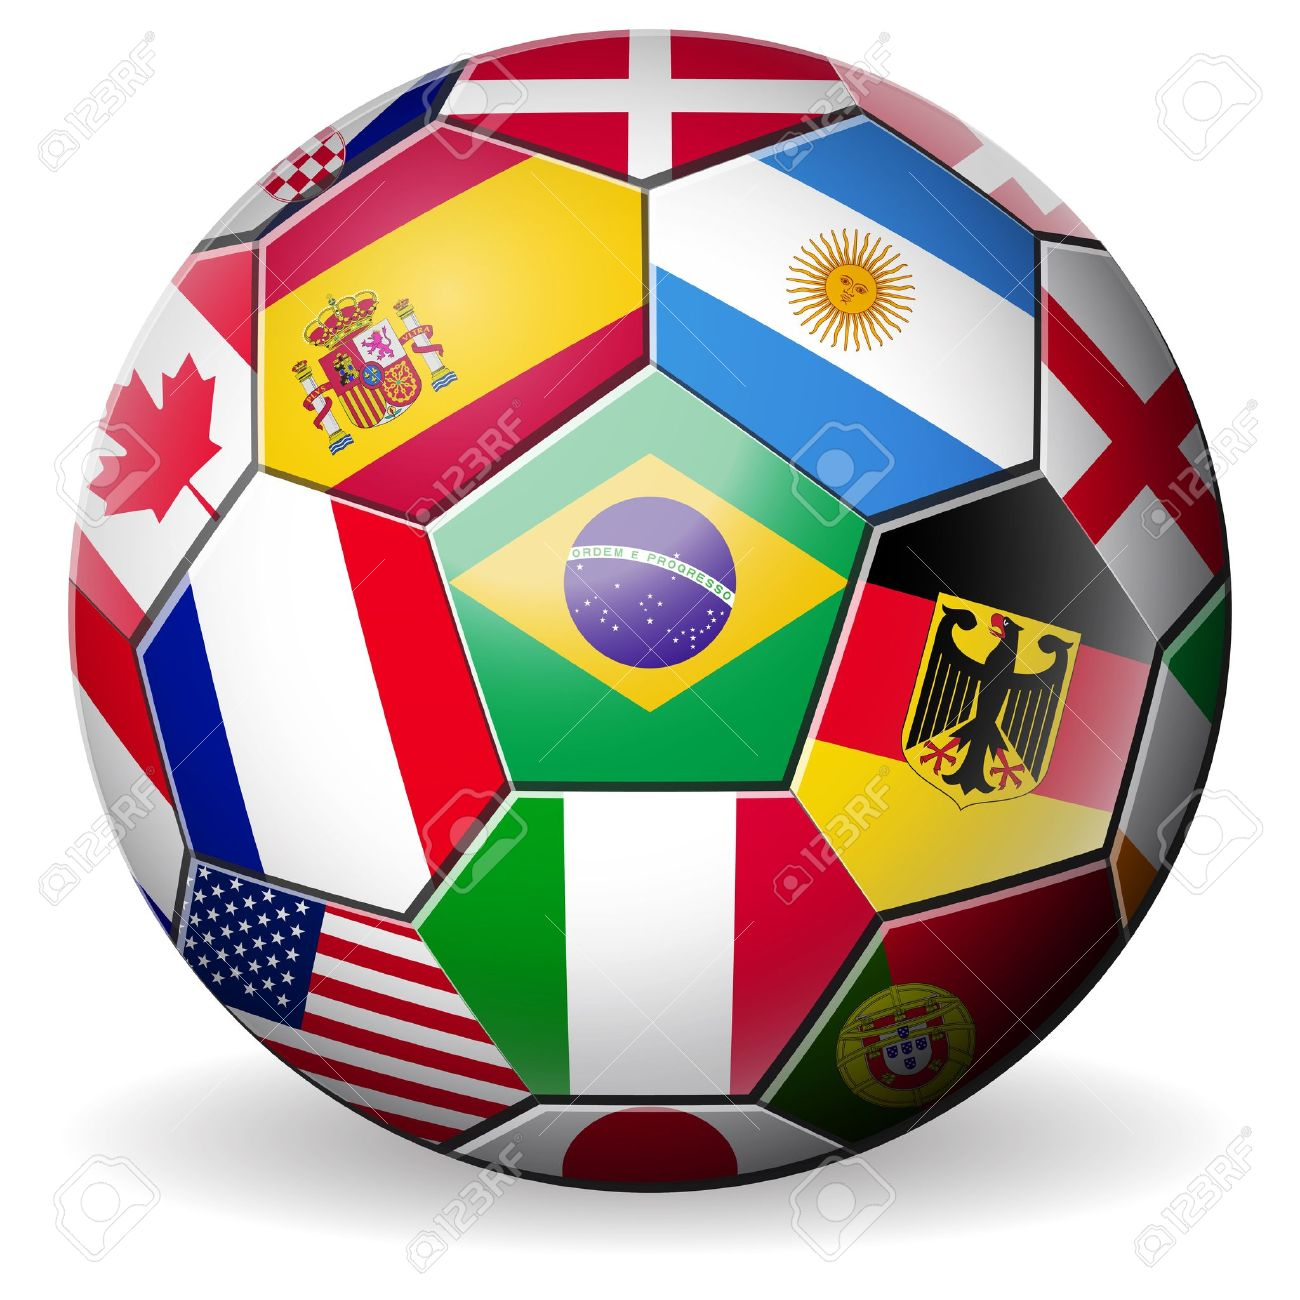 0 World Cup 2014 Stock Vector Illustration And Royalty Free World.